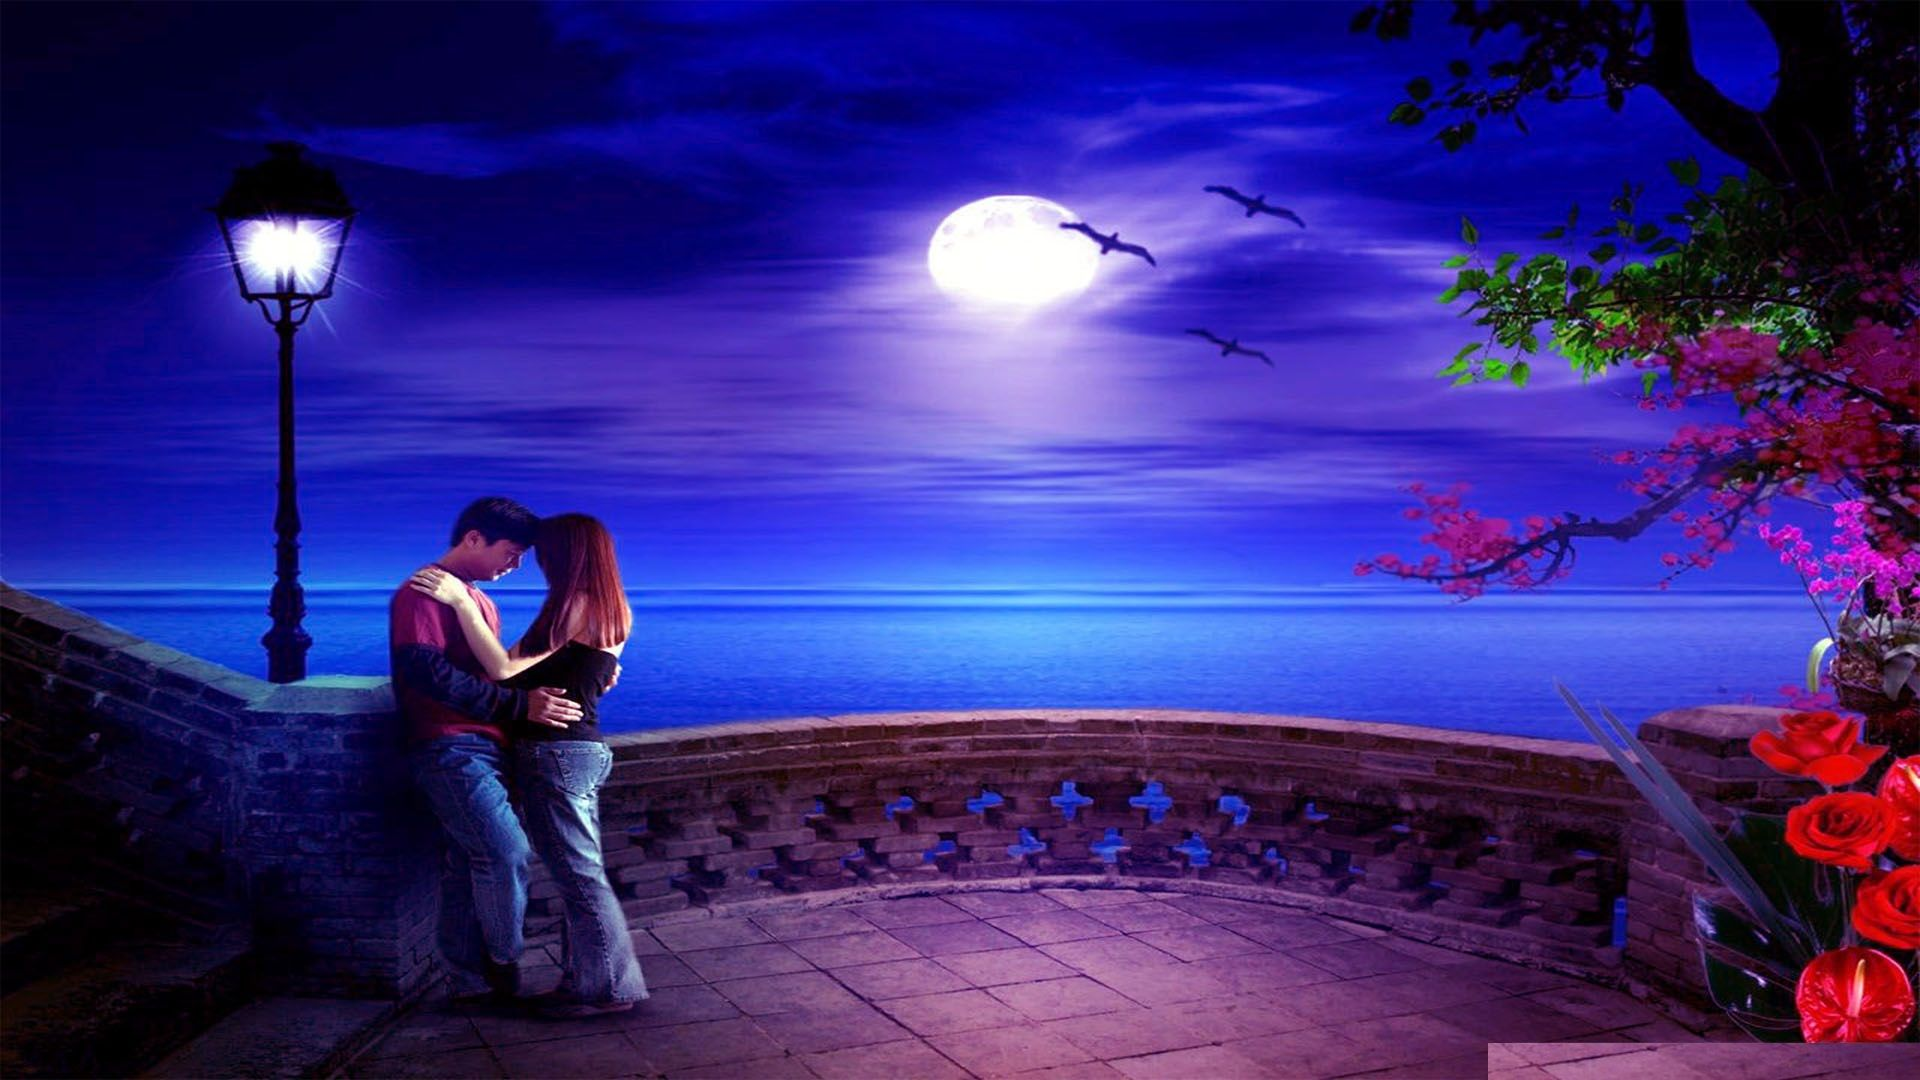 Romantic Love HD Wallpapers : Find best latest Romantic Love HD Wallpapers for your Pc desktop ...